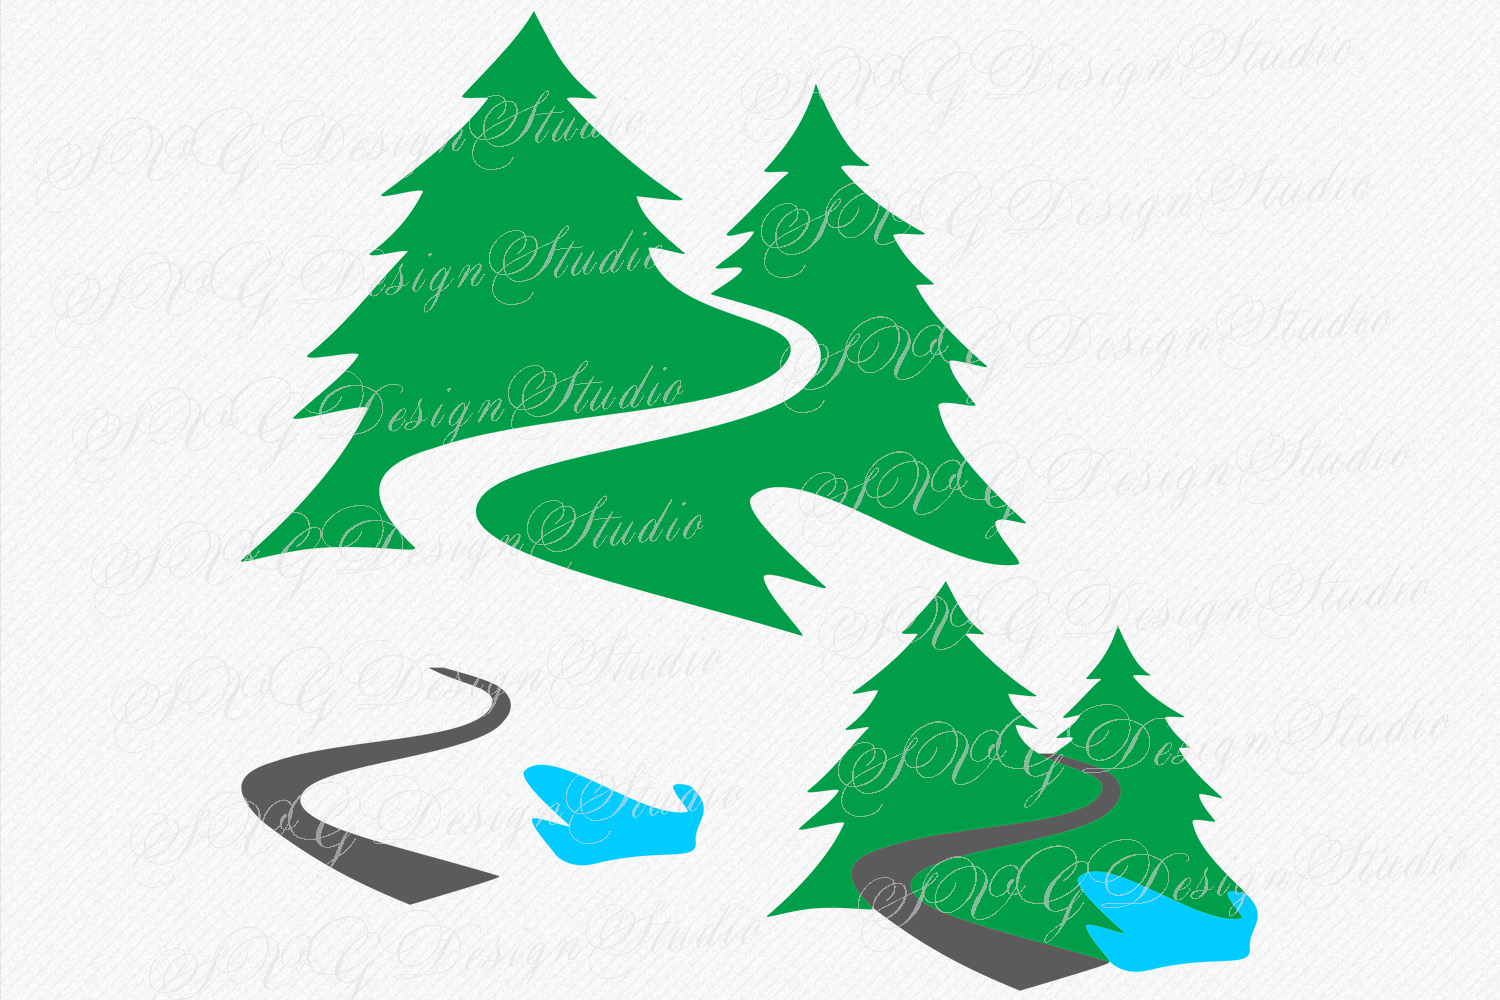 Forest tree svg, Forest Road SVG, road tree svg, Forest logo, forest design, Road in forest cutting file example image 1